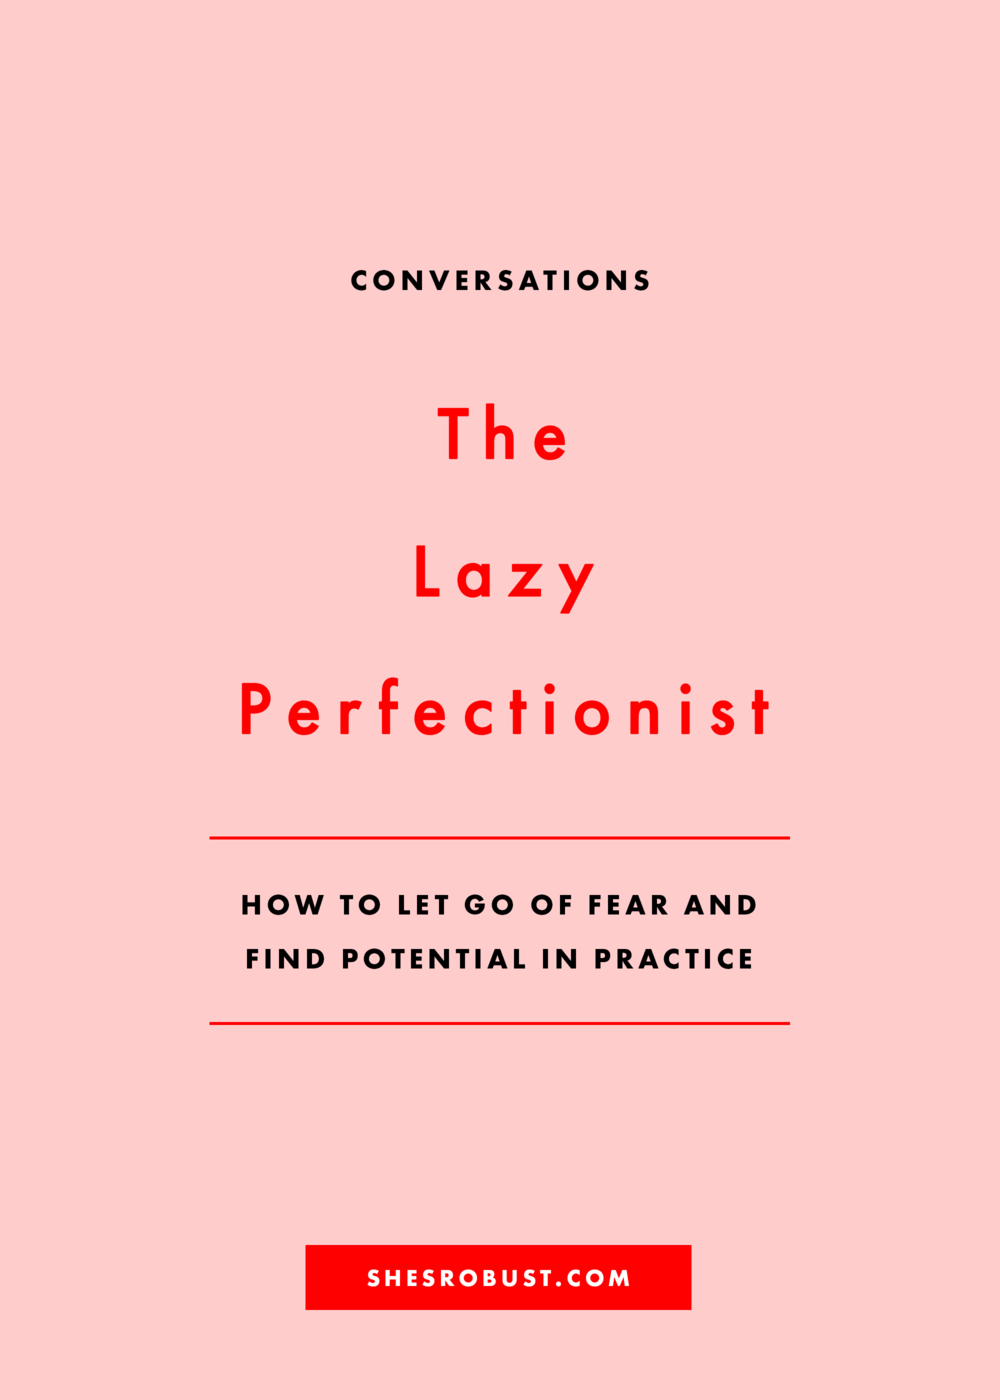 When your perfectionism gets in the way, how to find potential in practice